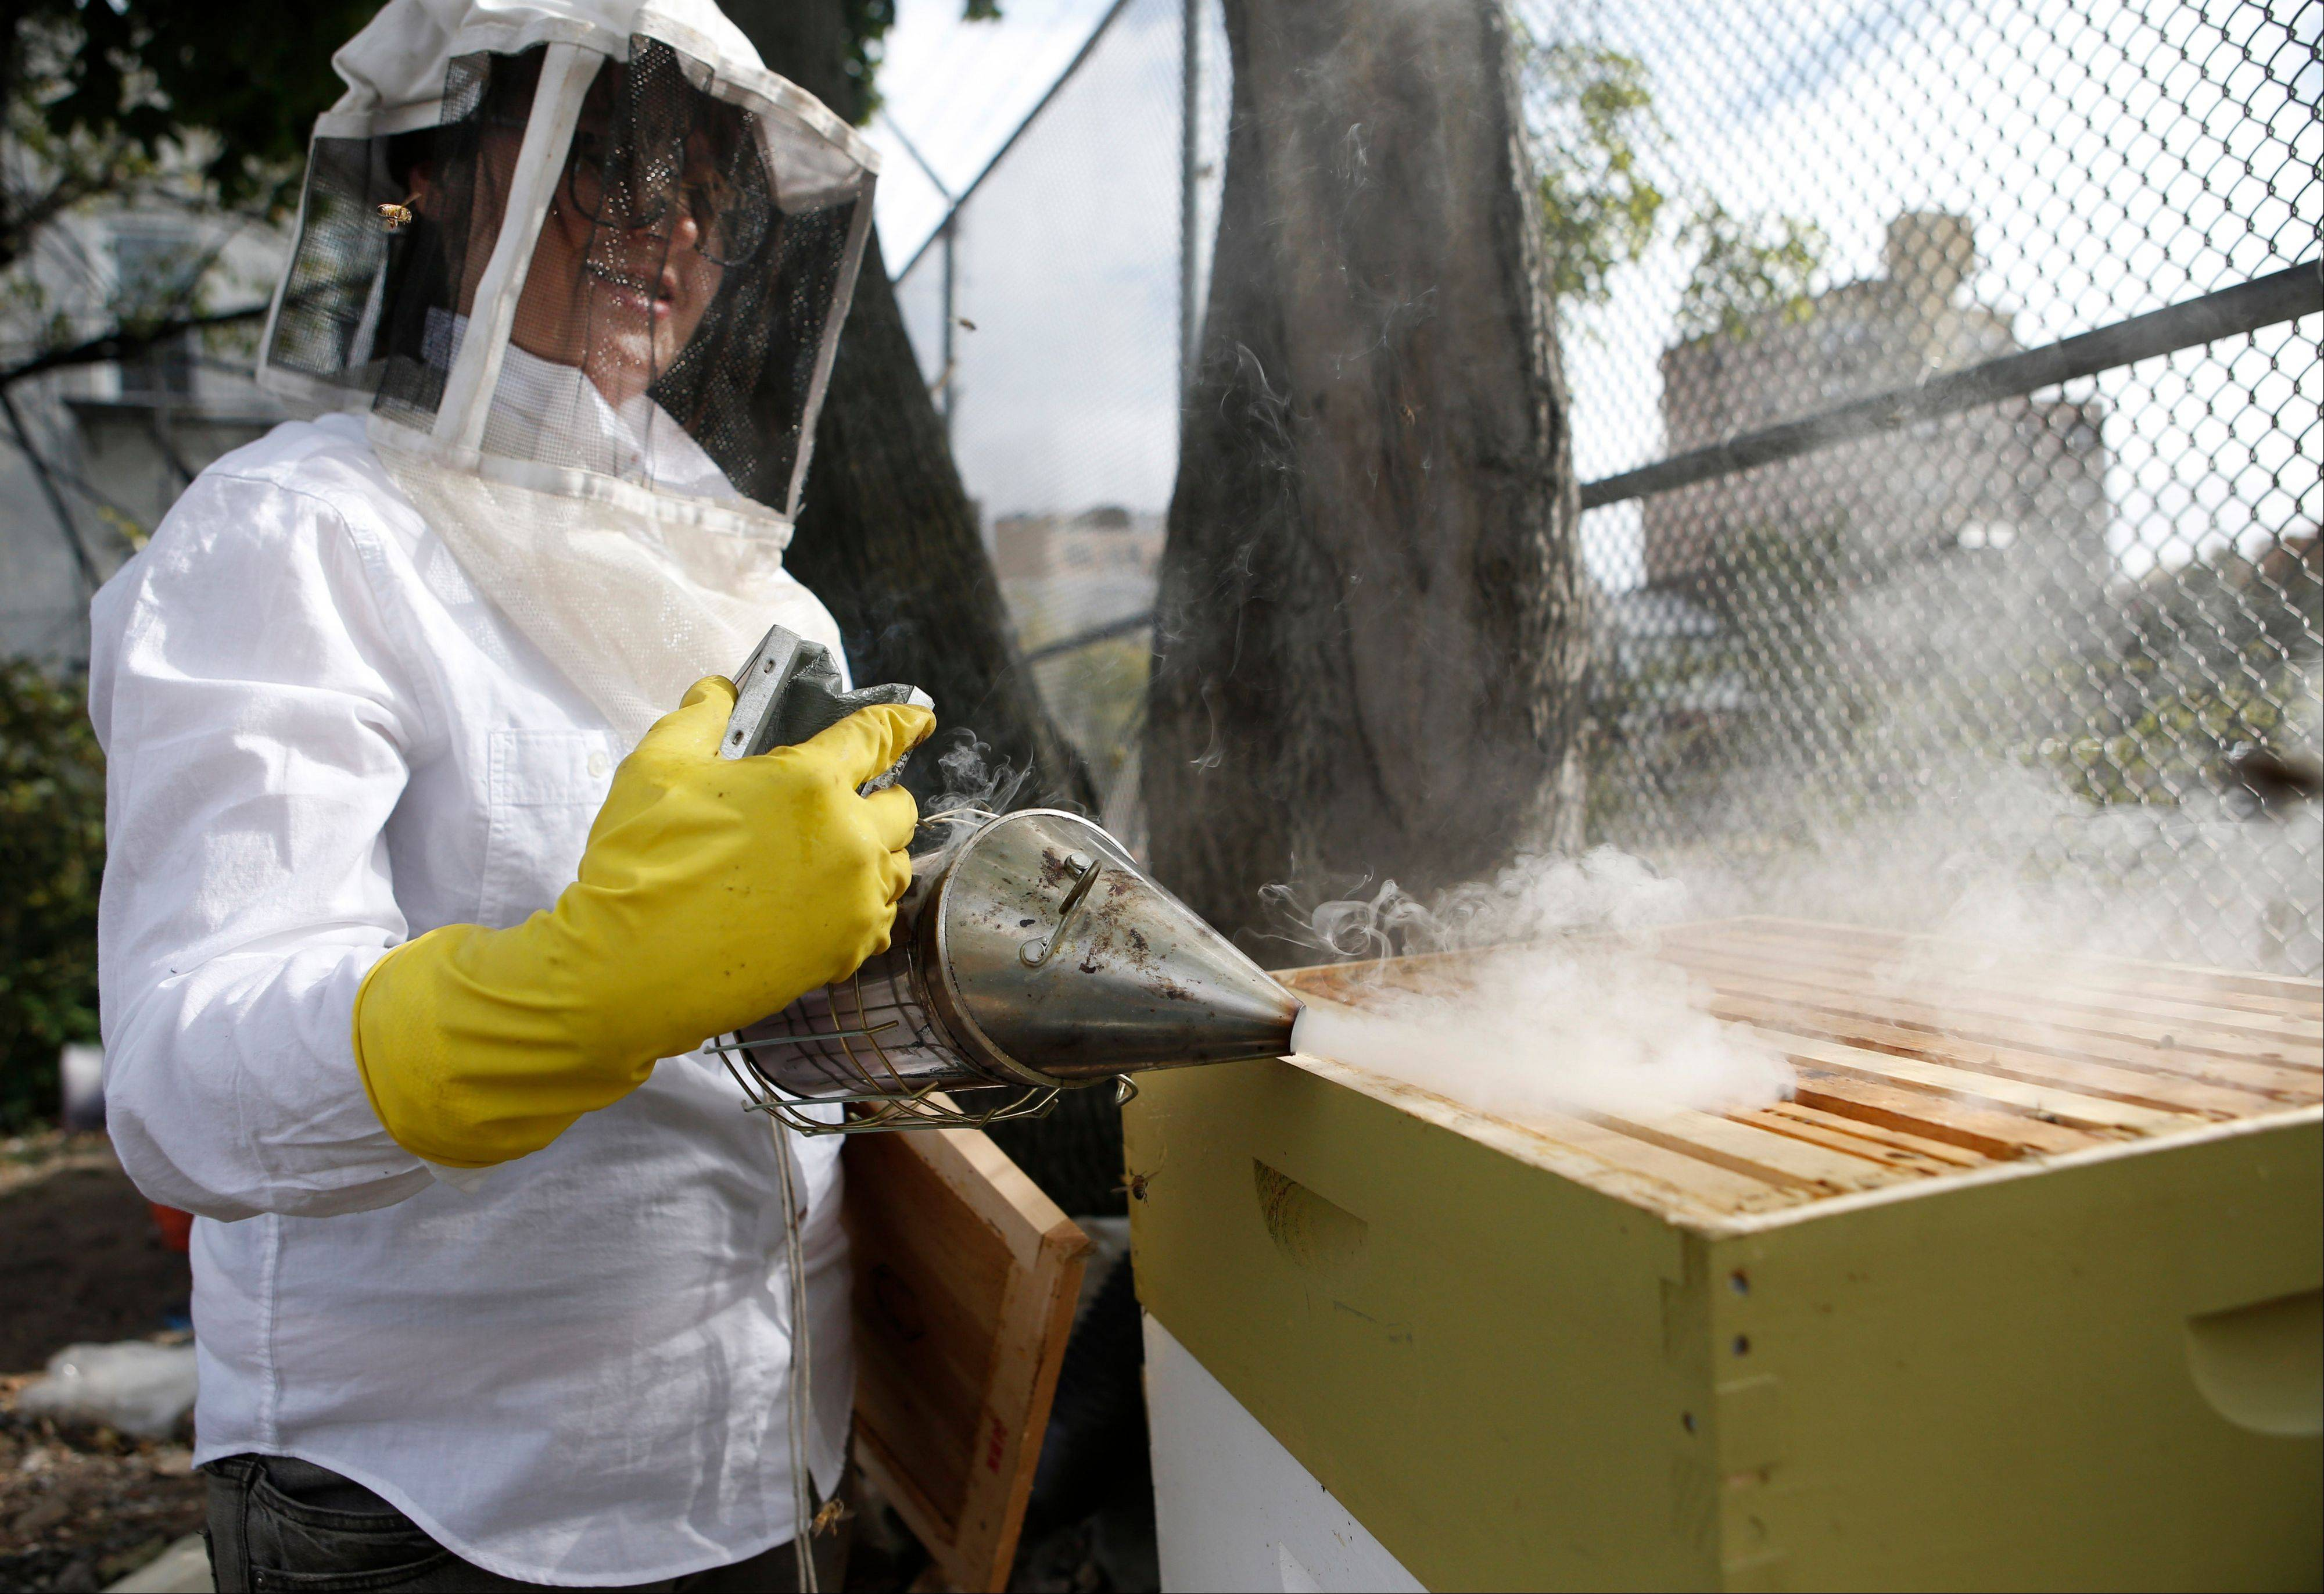 Beekeeper Kellen Henry uses a smoker to calm the bees while conducting a hive inspection.